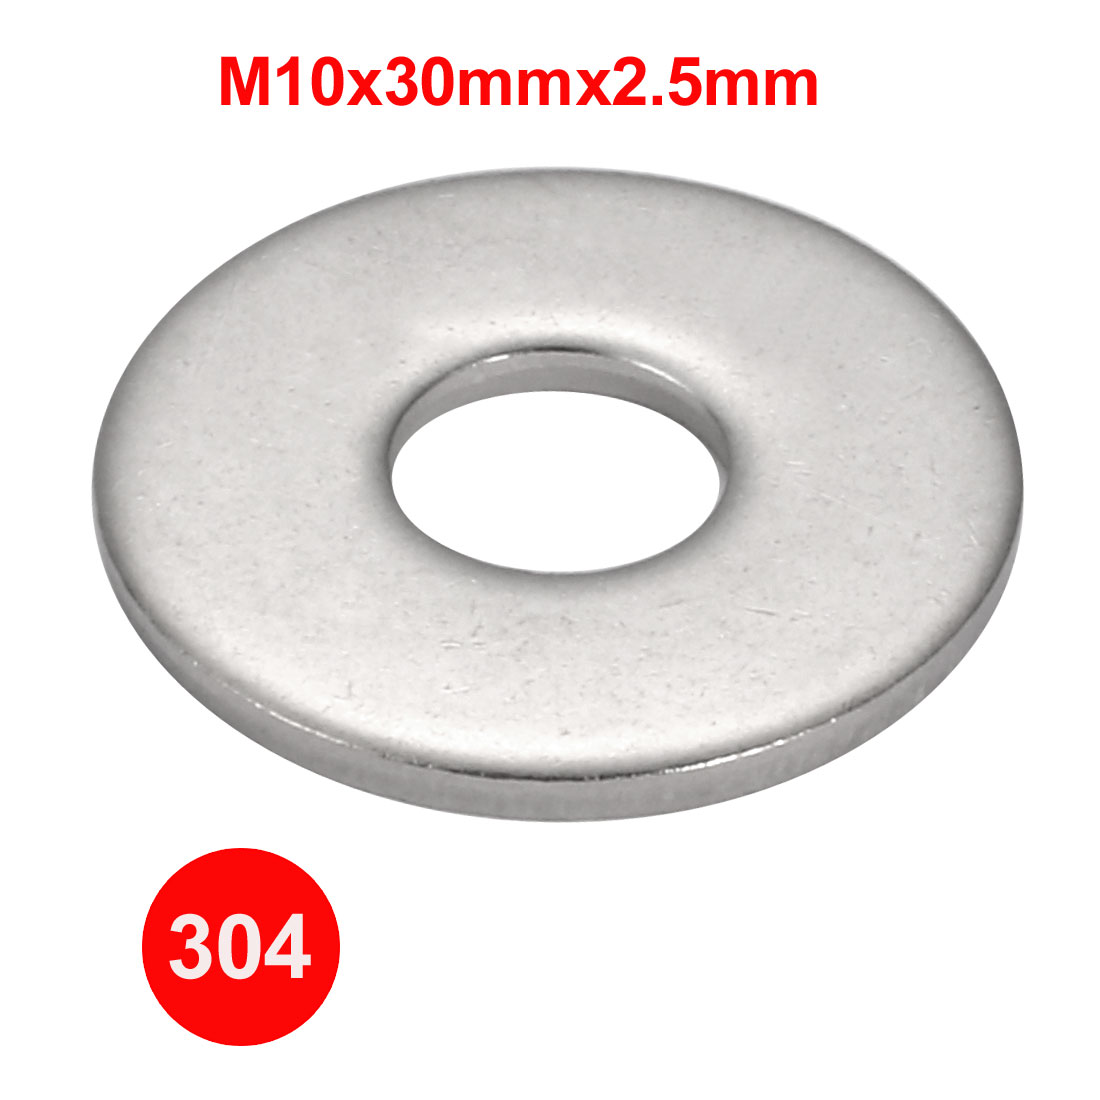 M10x30mmx2.5mm DIN9021 304 Stainless Steel Flat Washer Silver Tone 30pcs - image 1 of 3